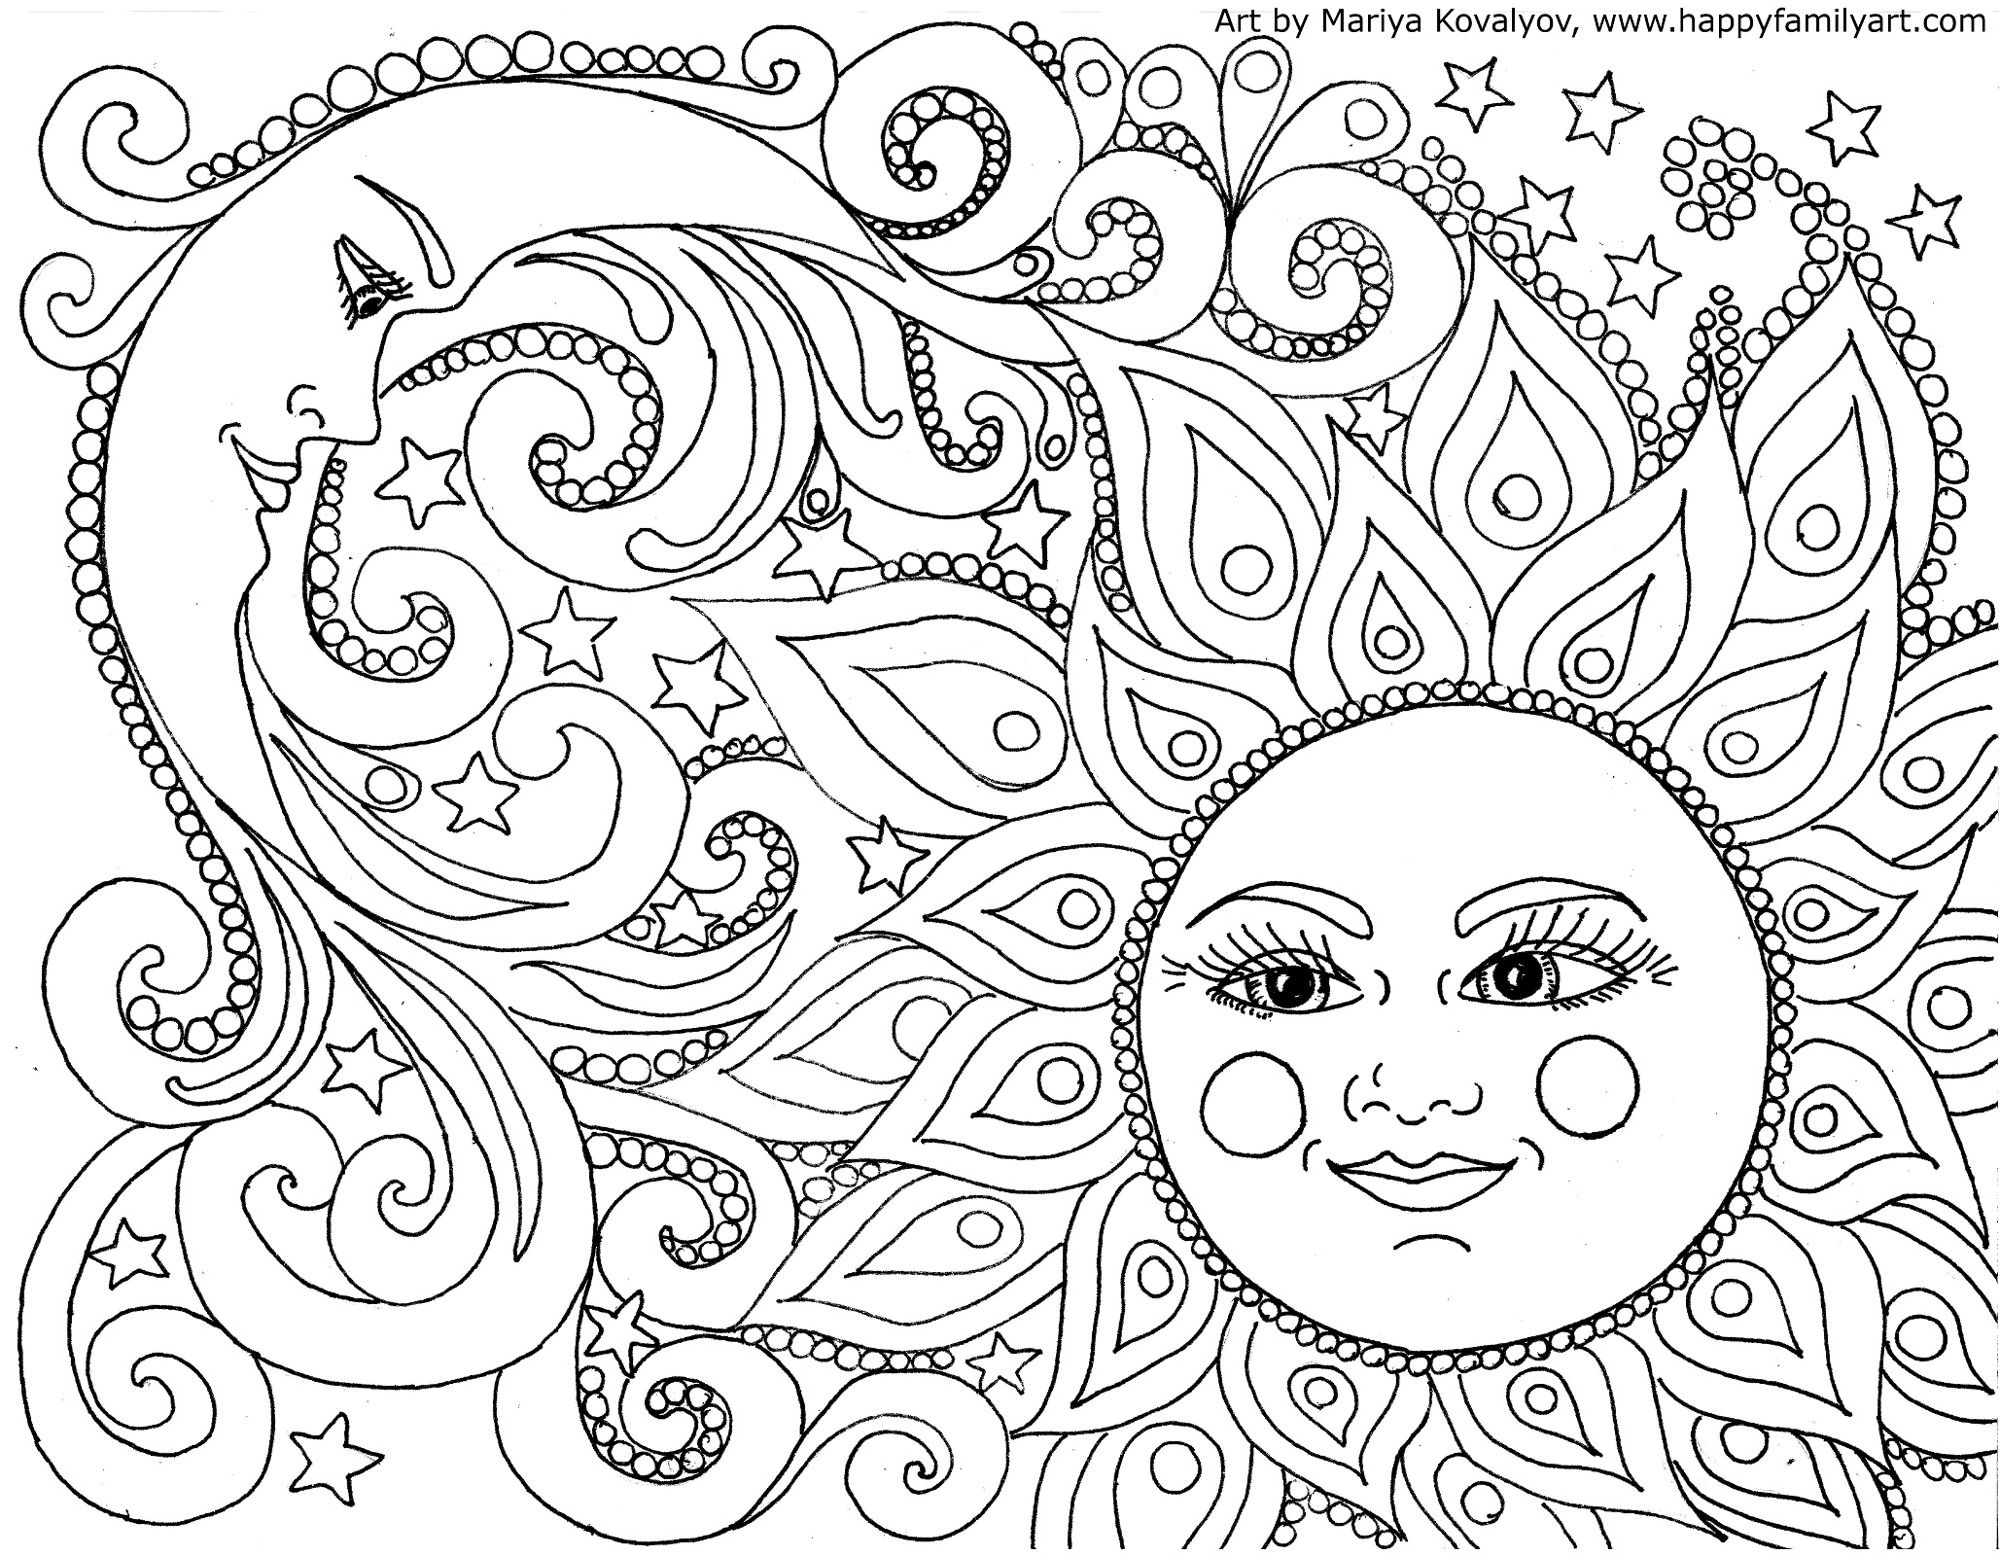 P 40 coloring pages - Sun And Moon Coloring Pages Adult